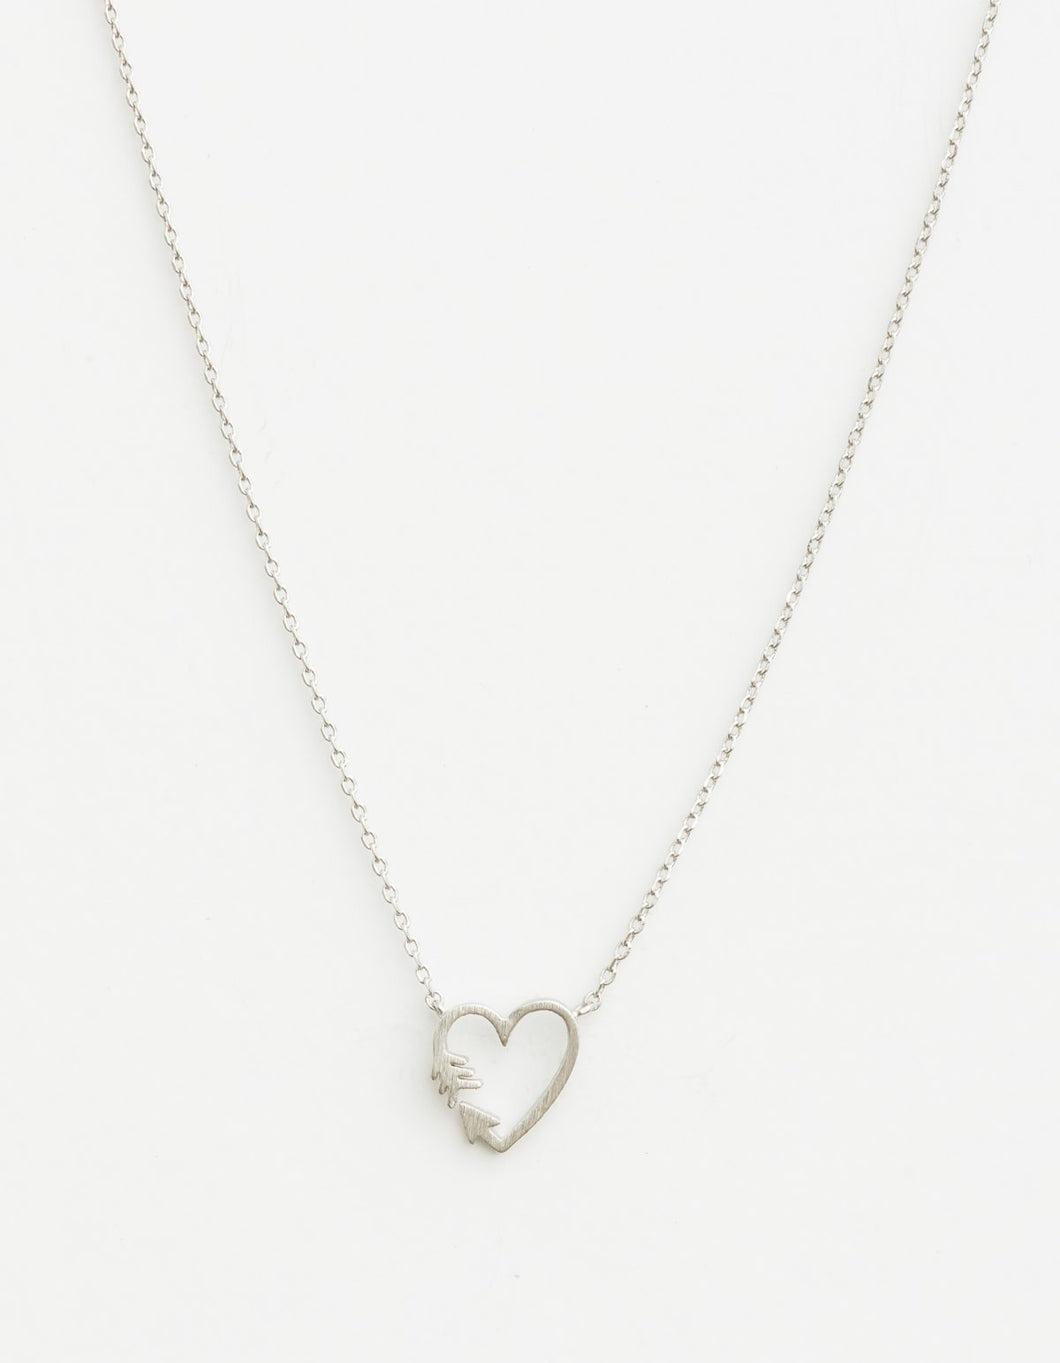 Silver Heart/Arrow Necklace